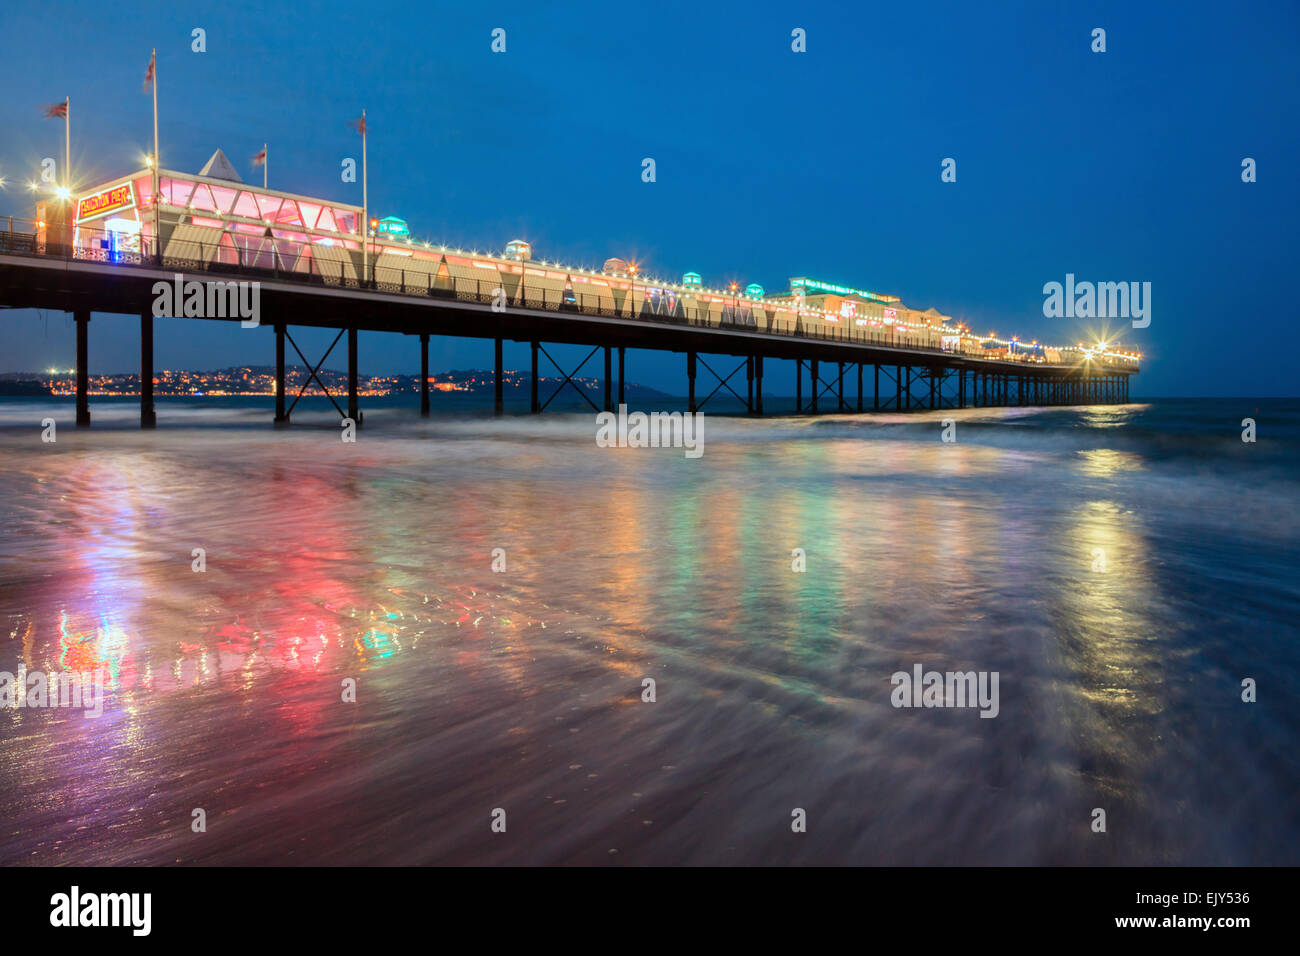 Paignton Pier in Torbay, captured during the hours of twilight. - Stock Image